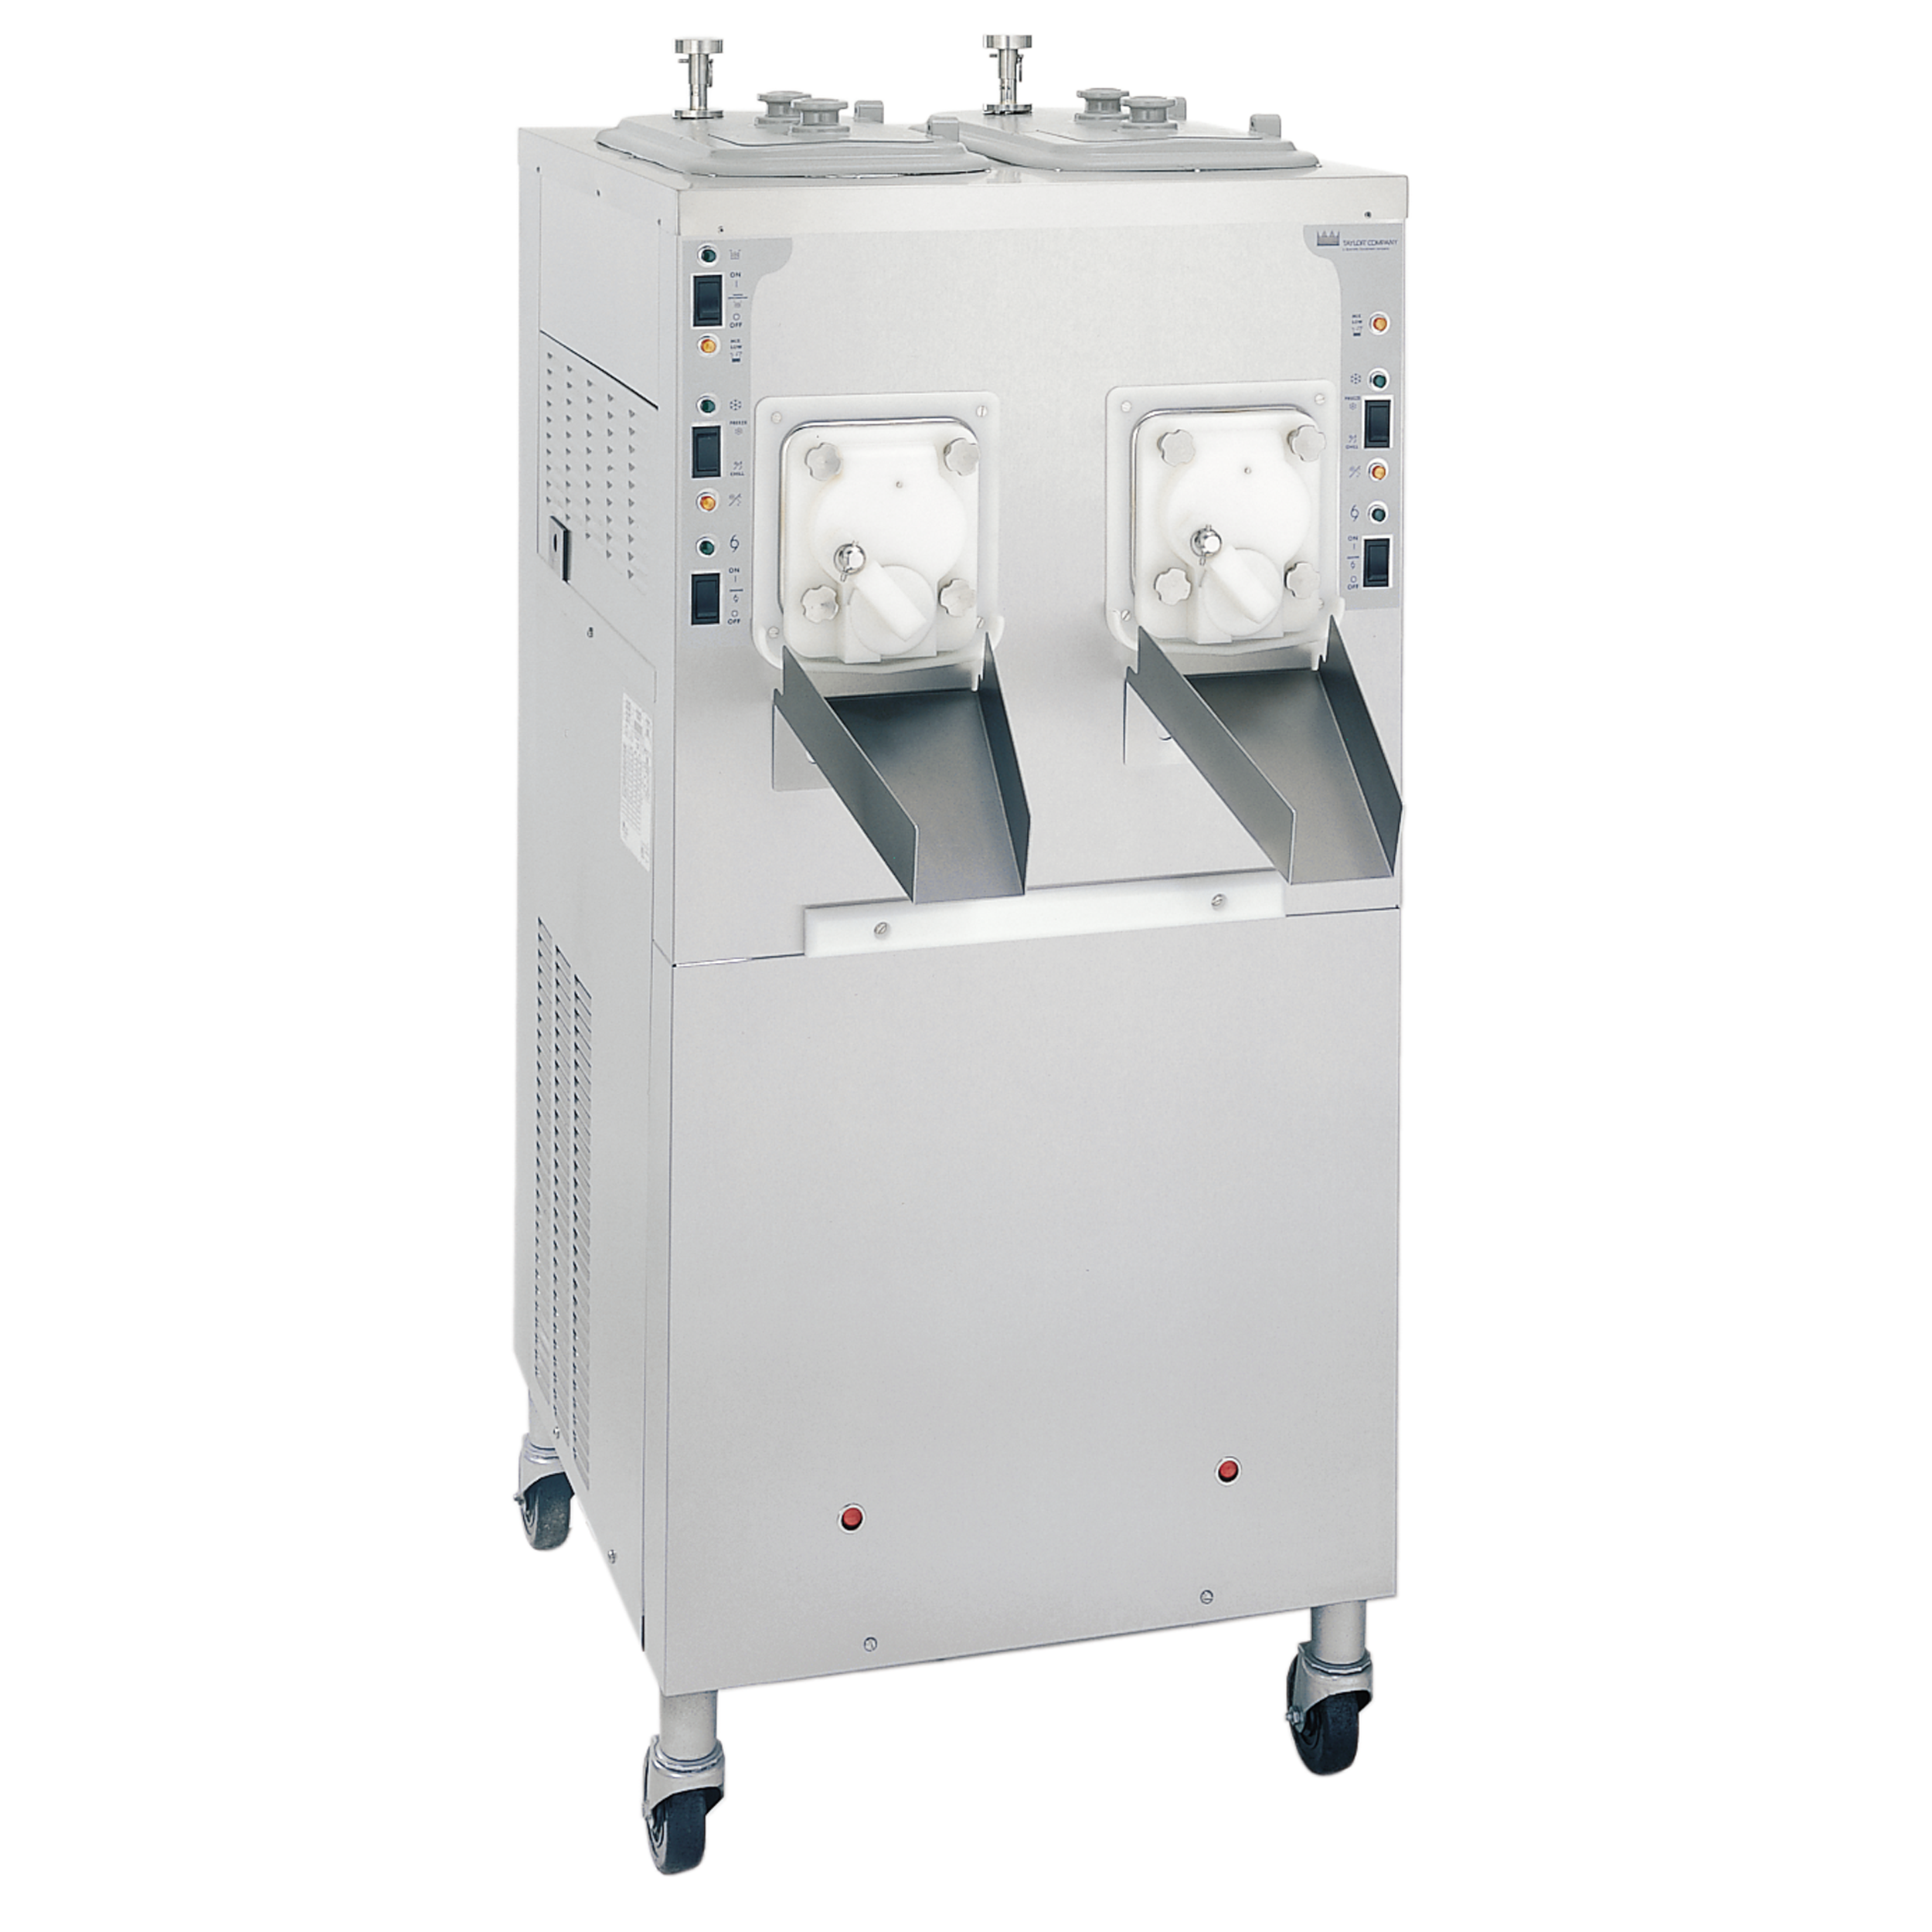 Model C002   Continuous Batch Freezer  Offer super premium frozen custard, low overrun ice cream or sorbet in two separate flavors.  KEY SPECIFICATIONS:   Finished Products : Batch   Installation : Floor   Number of Flavors : 2   Freezing Cylinder QTY : 2   Freezing Cylinder Size (qt/l) : NA